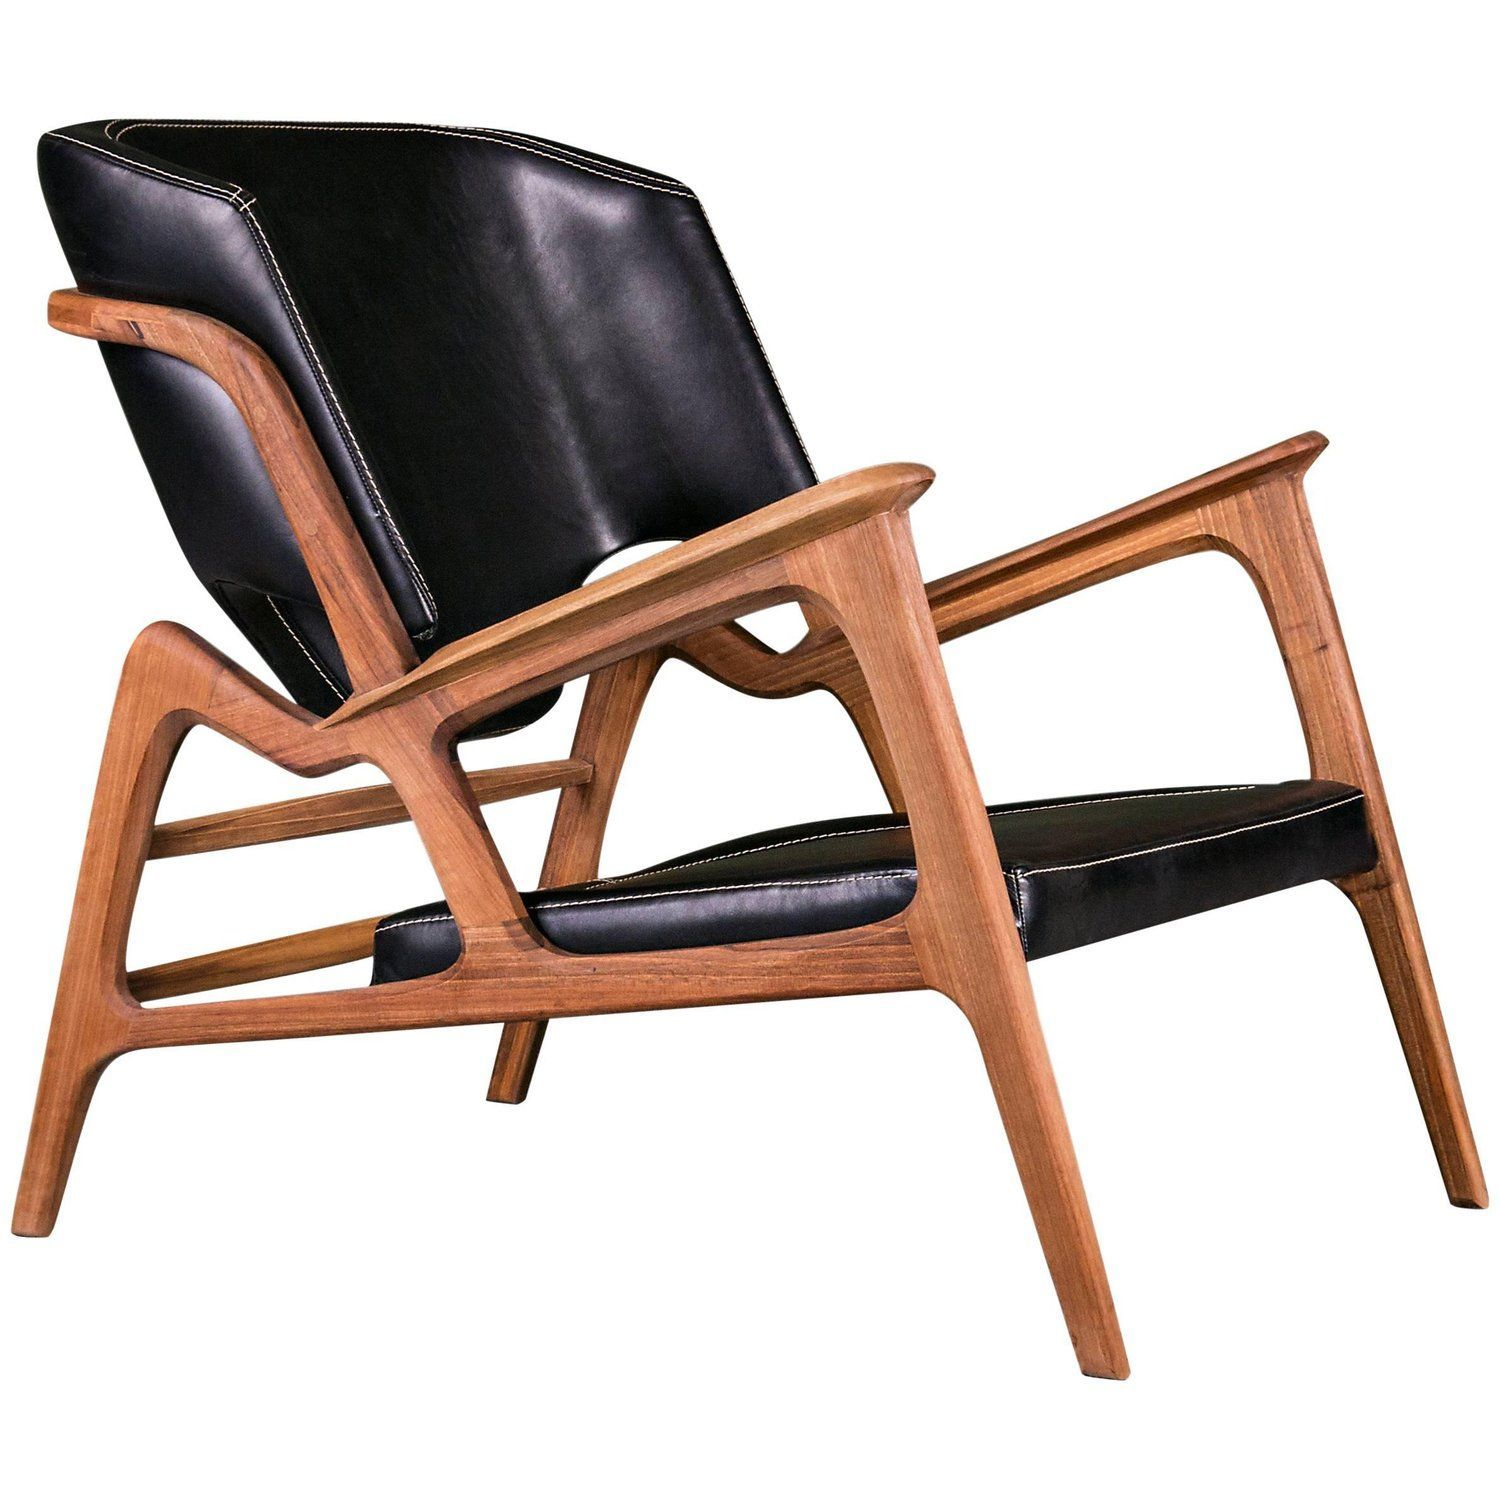 Tisa Armchair Contemporary Lounge Chair In Walnut And High Quality Leather 1stdibs Com Uniquech Contemporary Lounge Chair Unique Chair Contemporary Chairs